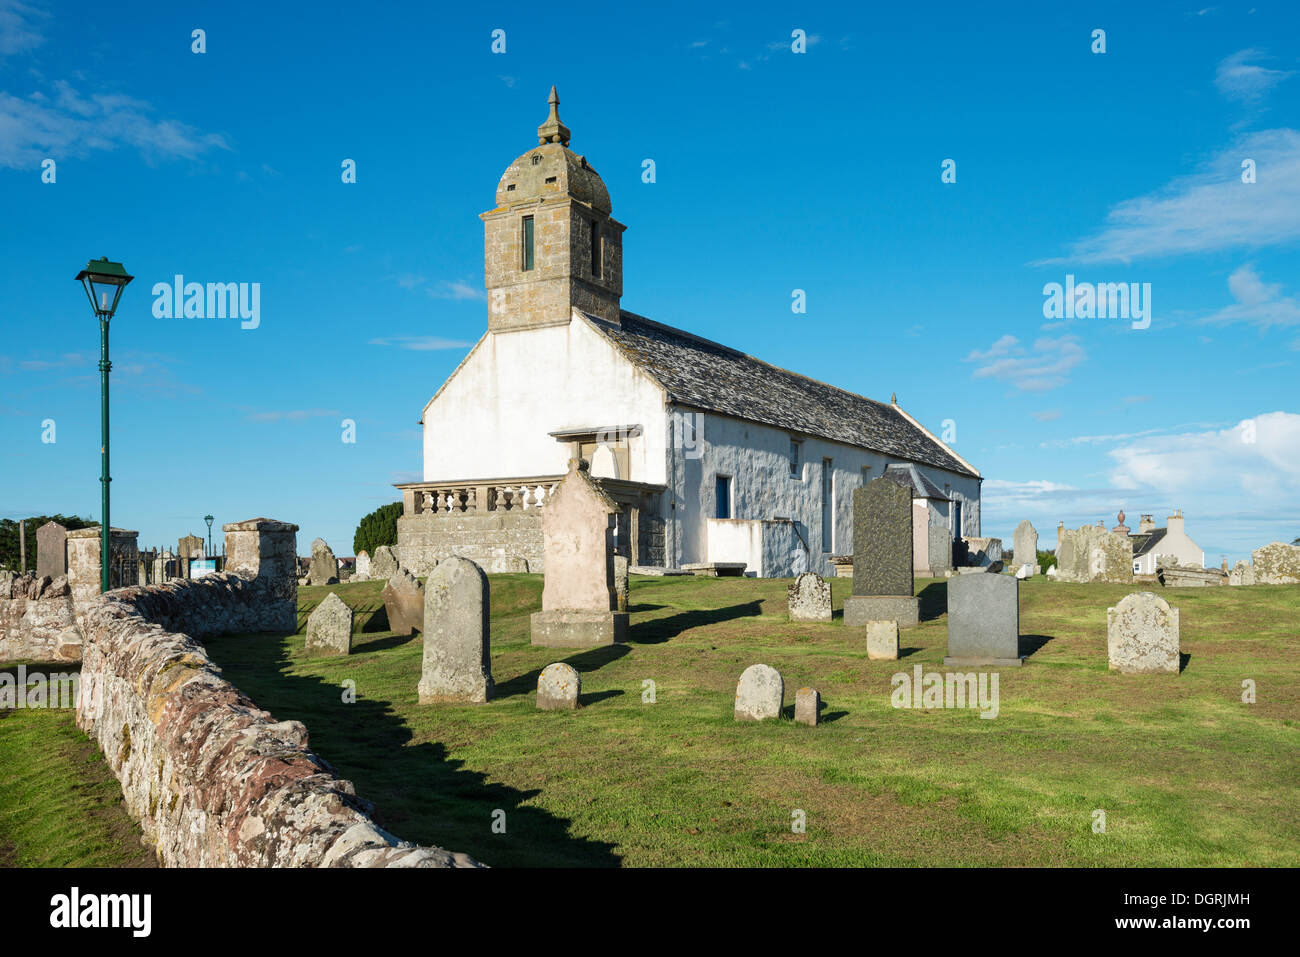 The Tarbat visitor center with museum about the Picts at Portmahomack, Scotland, UK, Europe, PublicGround - Stock Image